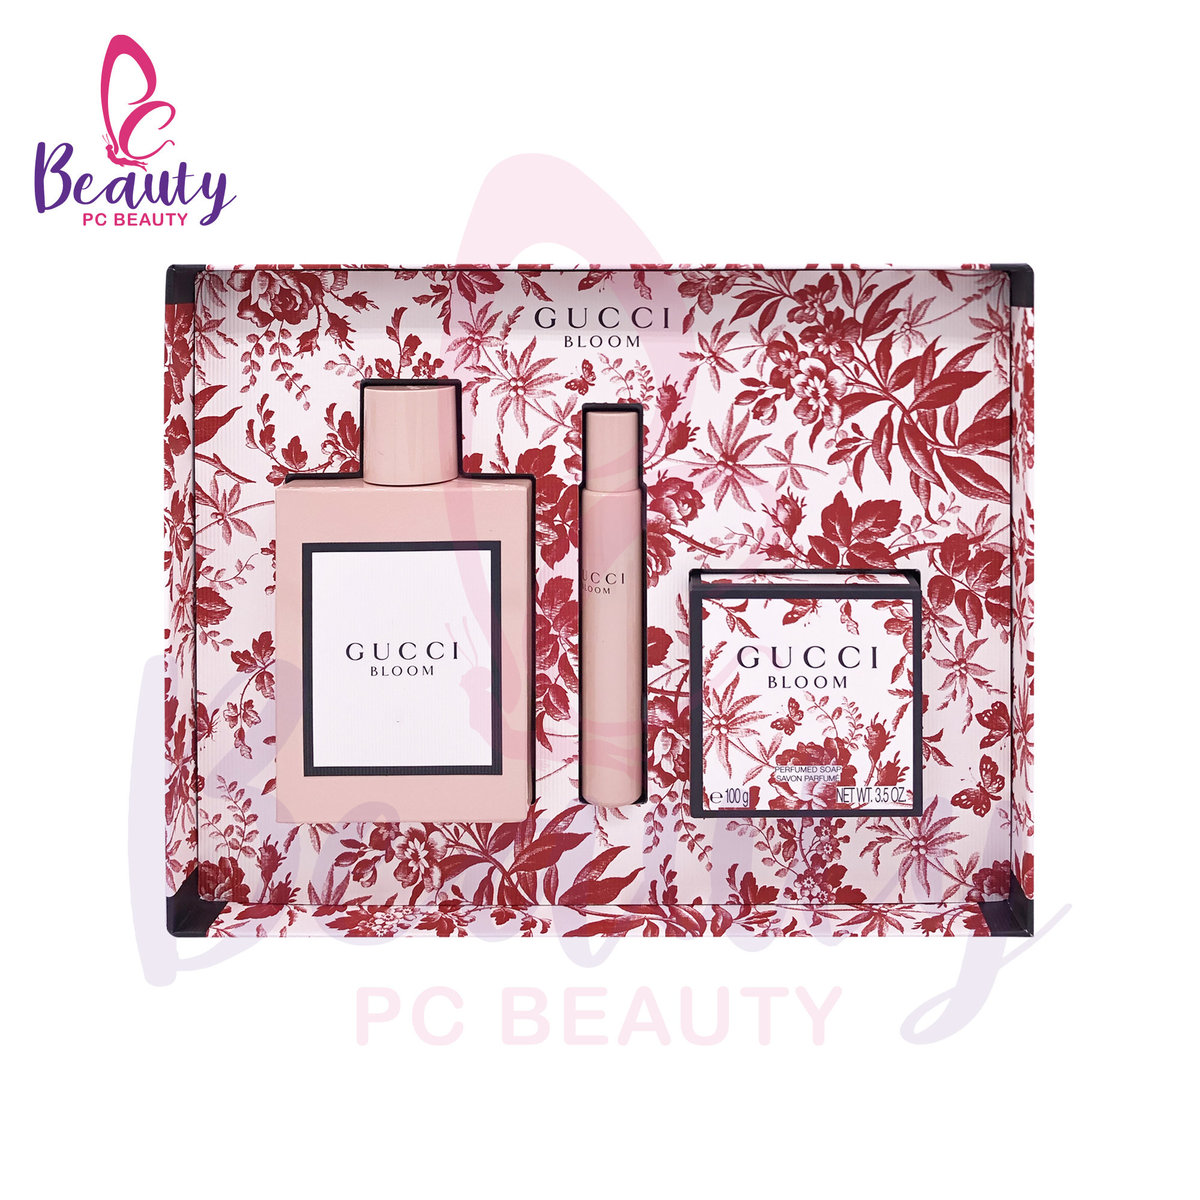 GUCCI BLOOM GIFT SET (3PCS) [Parallel Import Product]